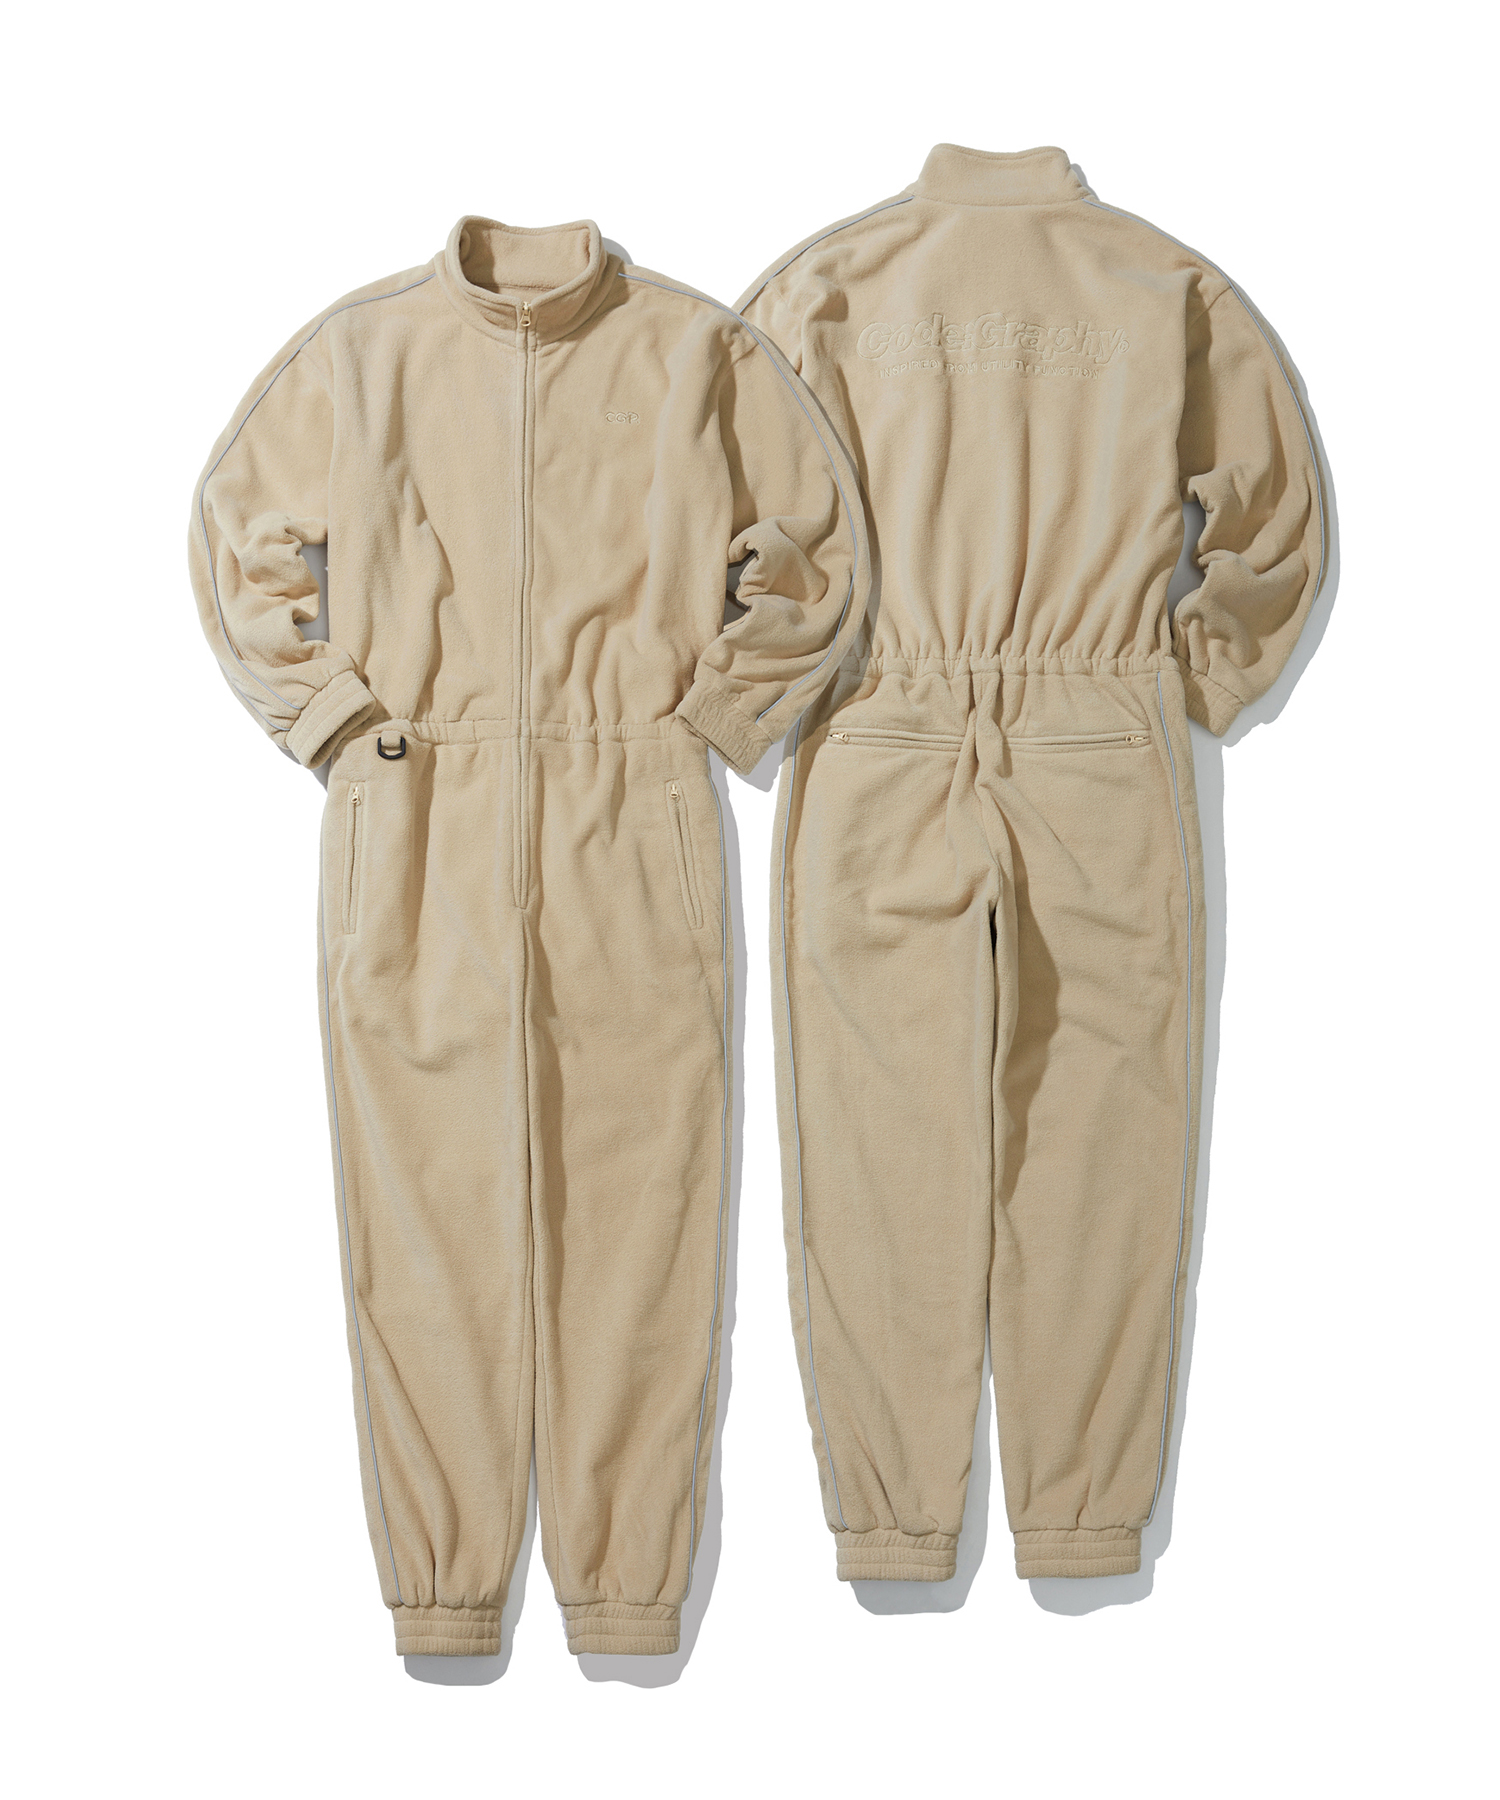 FLEECE JUMP SUIT - BE